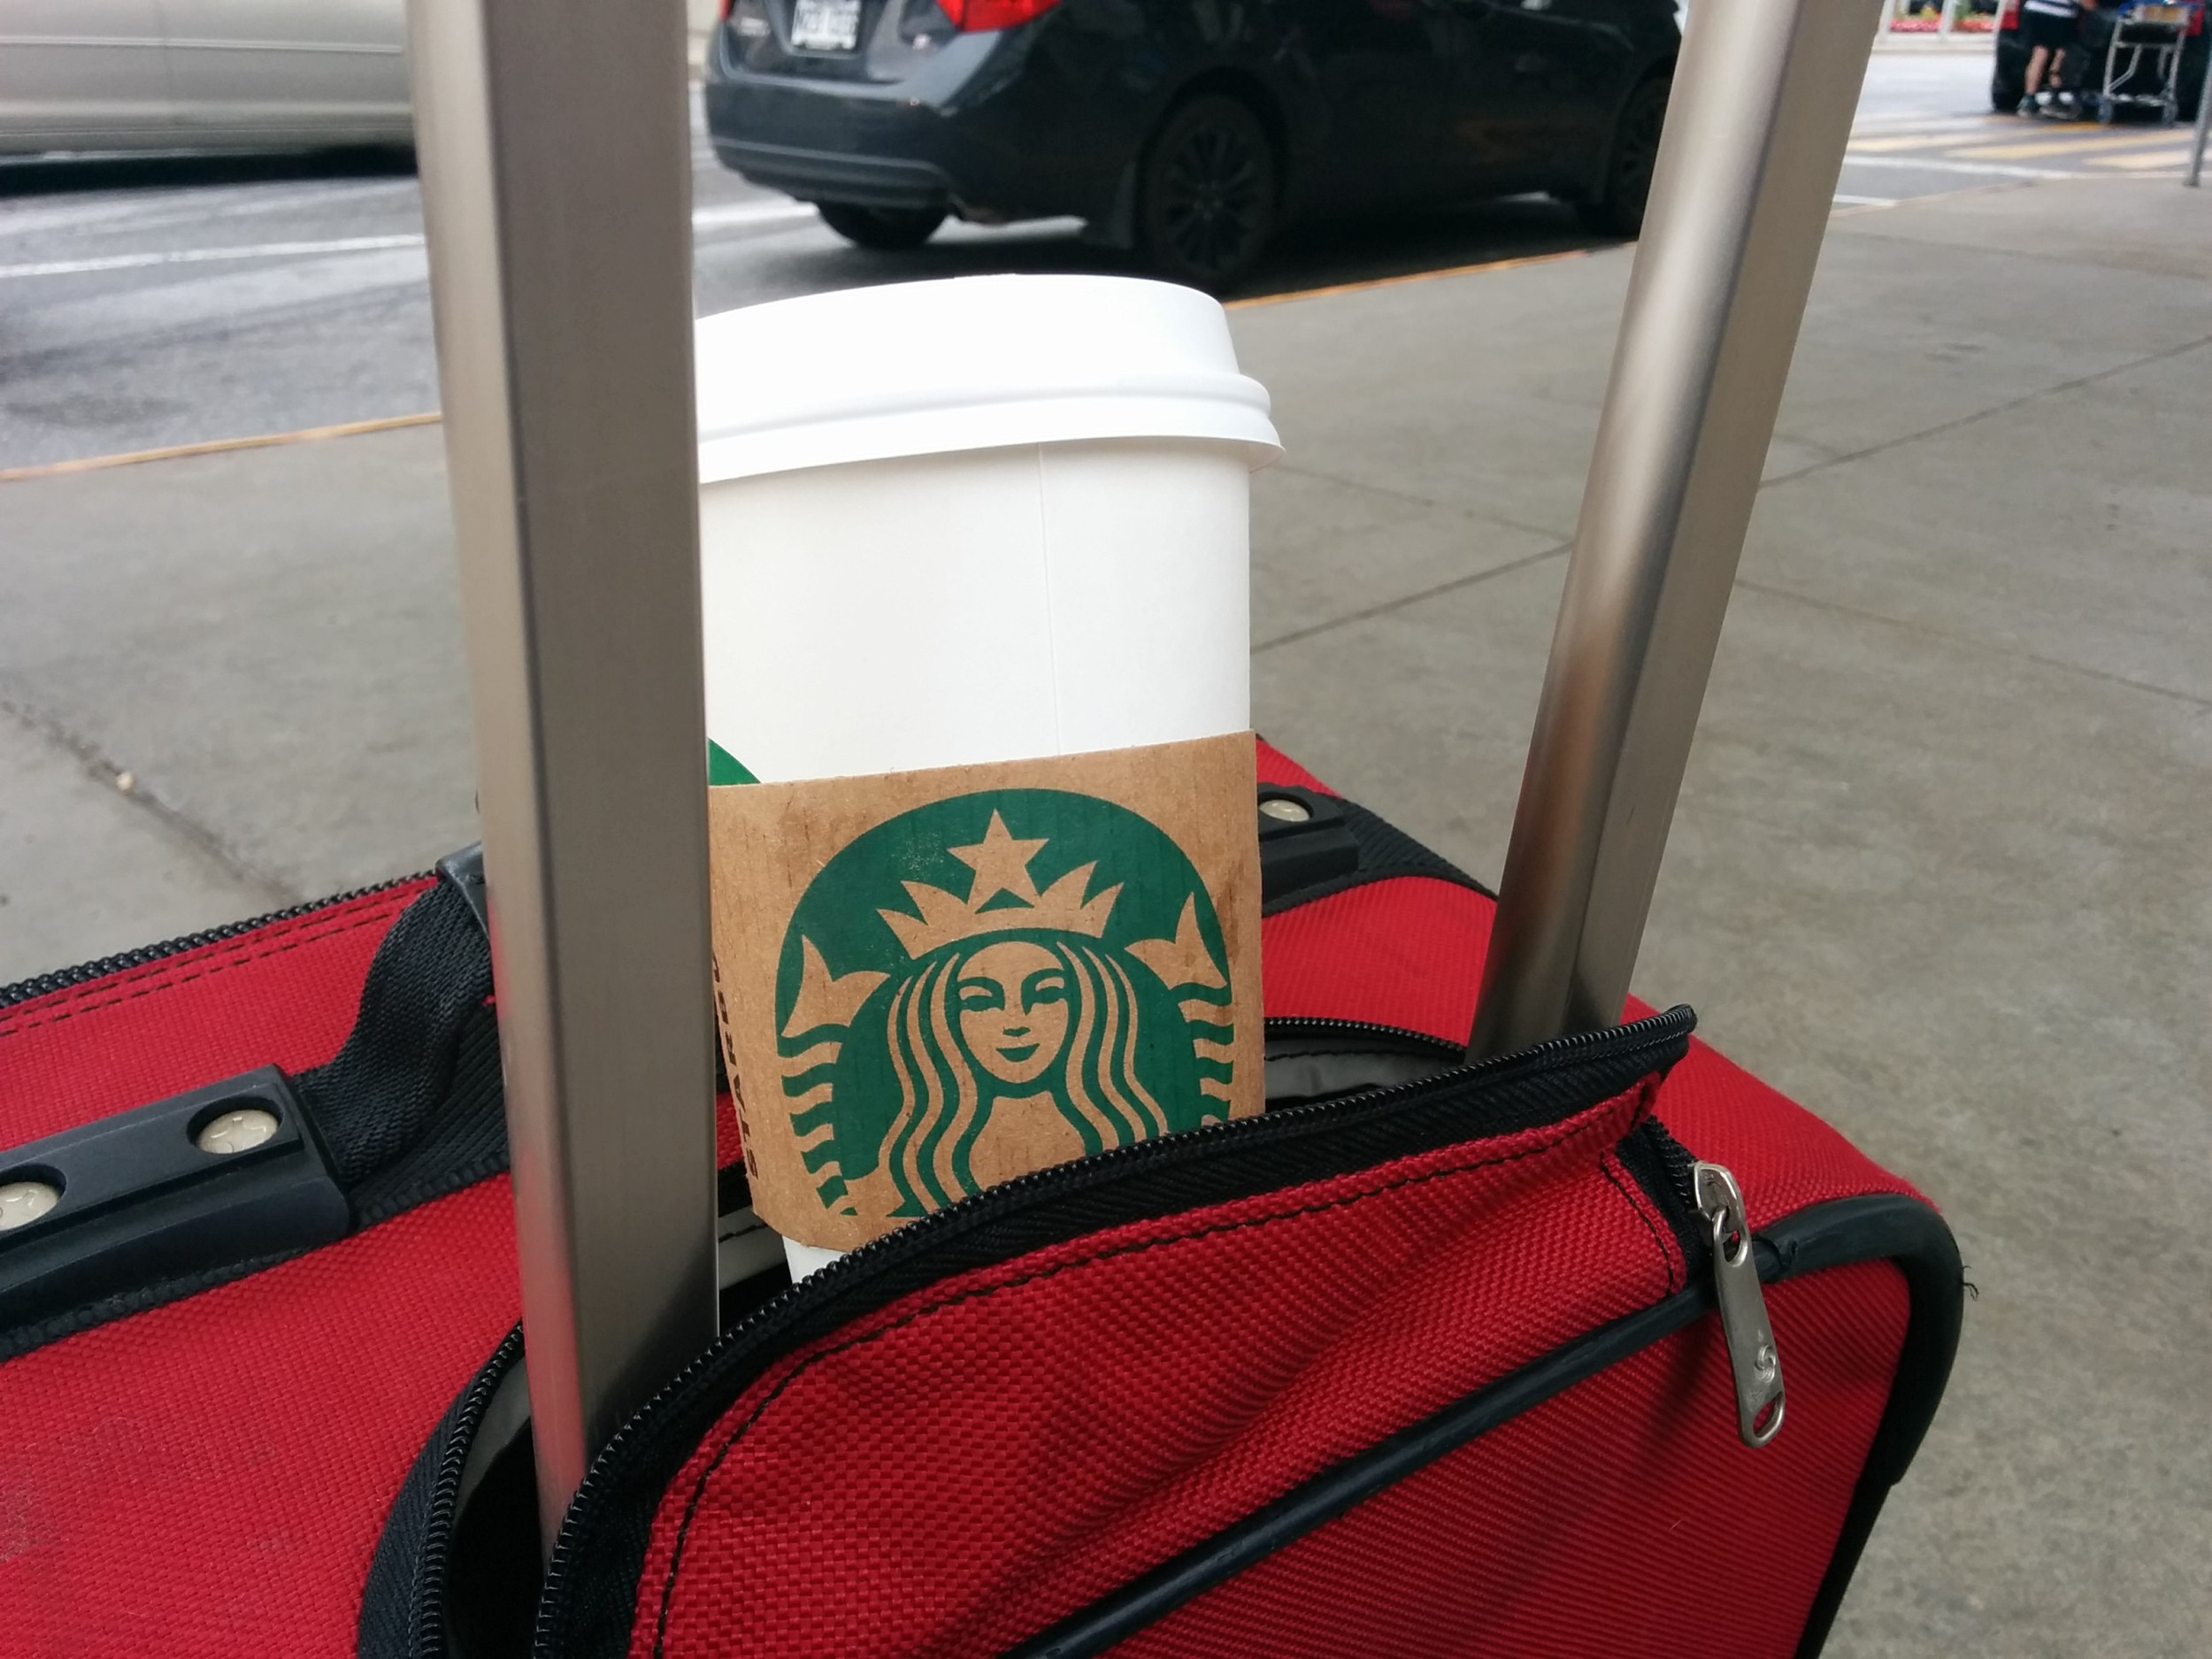 The only travel accessory needed after a long night of flights. Bring on the coffee!